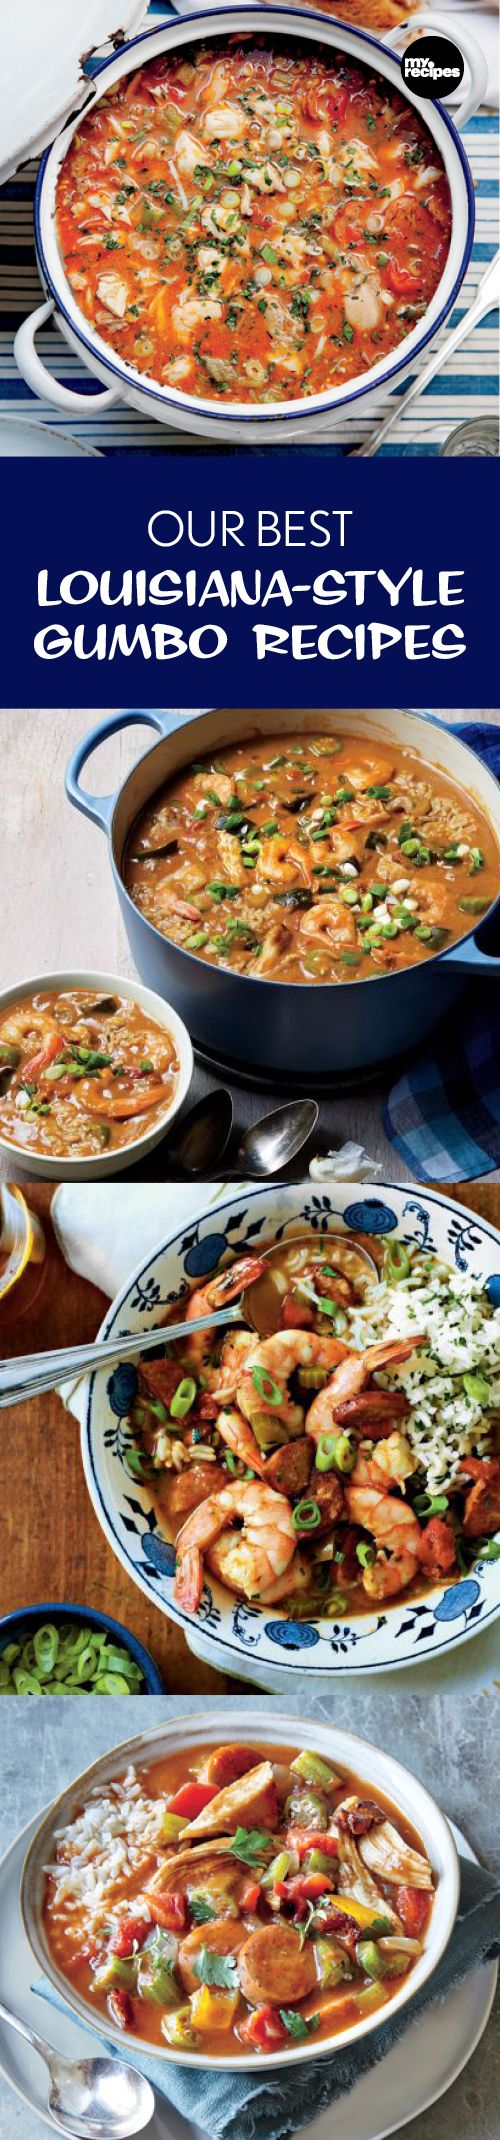 Our Best Louisiana-Style Gumbo Recipes | MyRecipes Whip up a big pot of the good stuff and bring some cajun flair to your neck of the woods with these fantastic down-home gumbo recipes.